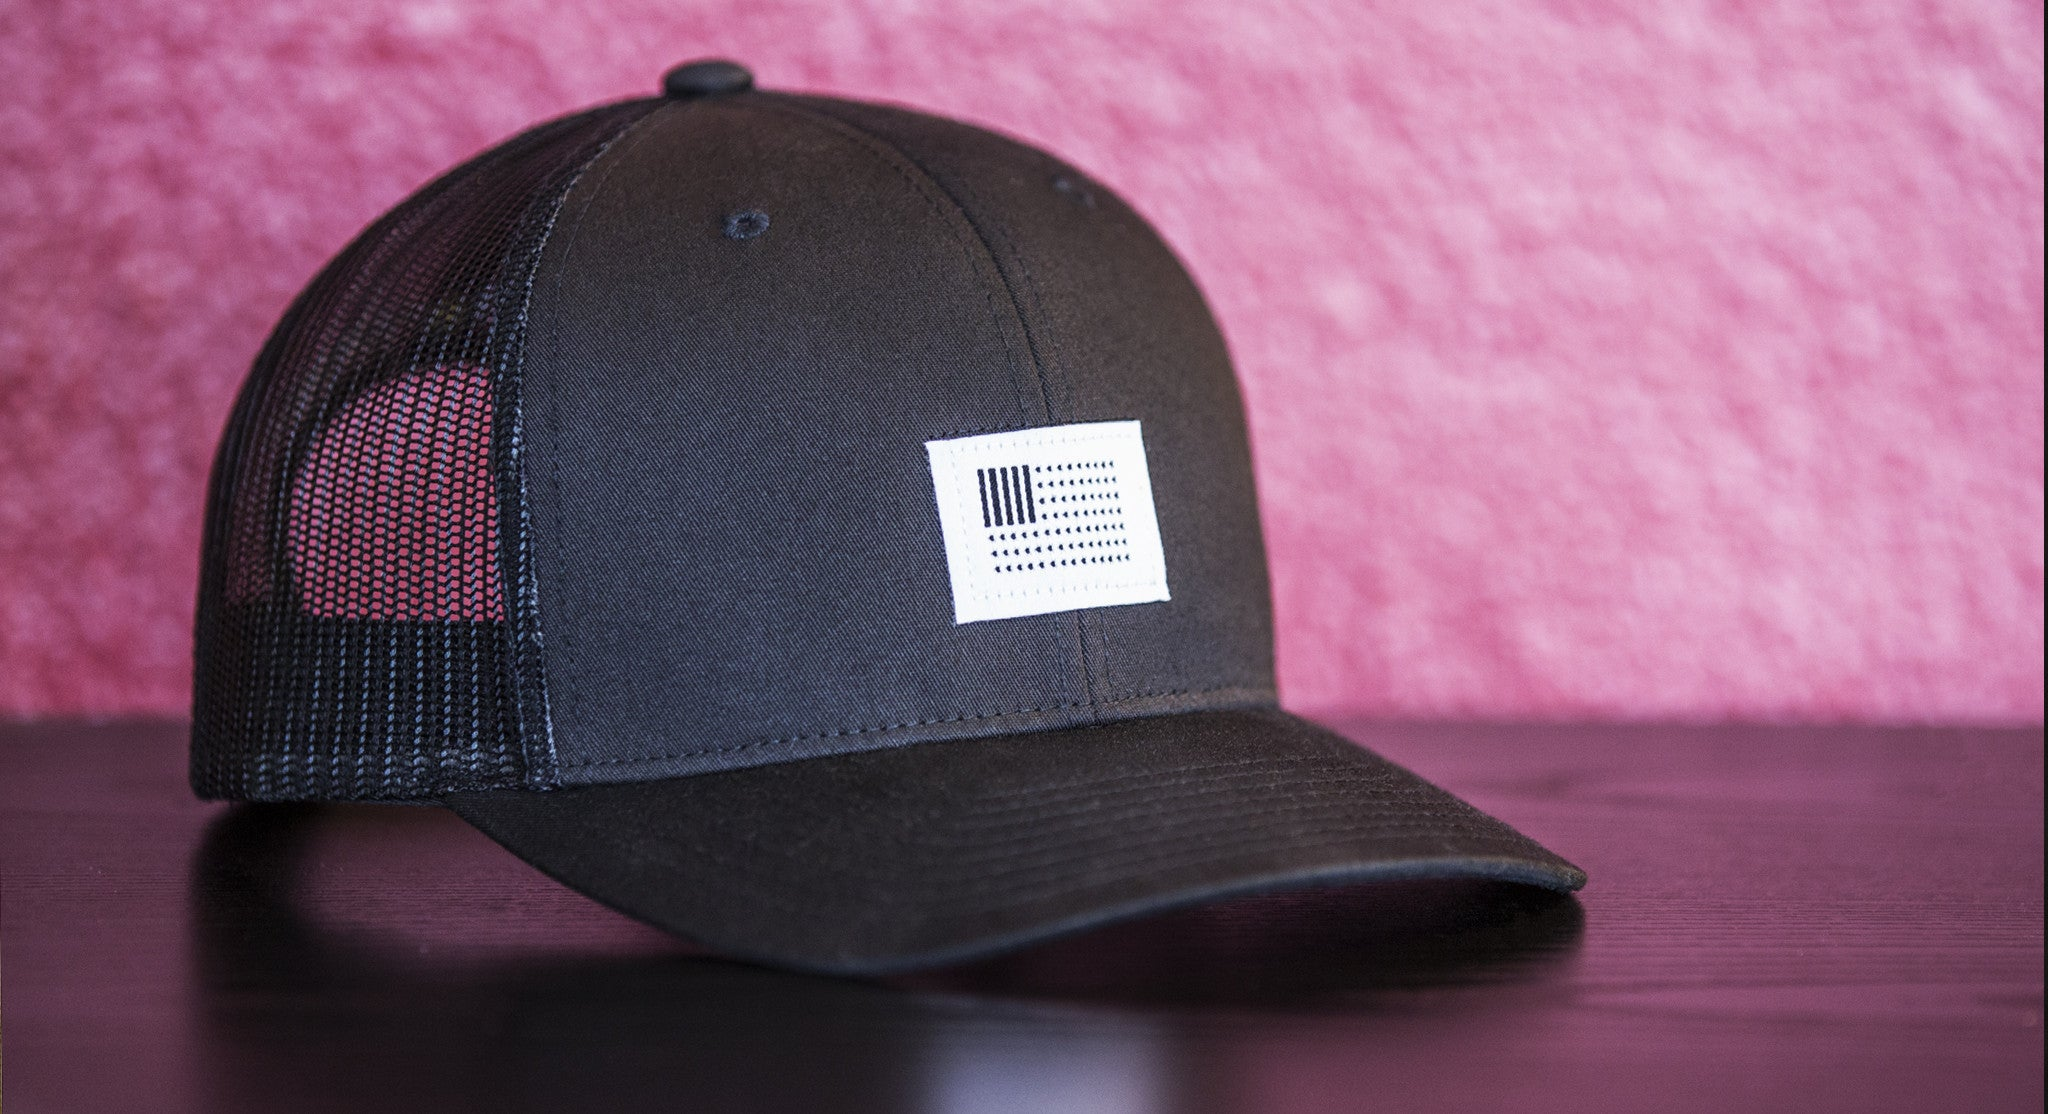 BARS & STARS CREW TRUCKER // BLACK | SNAPBACK